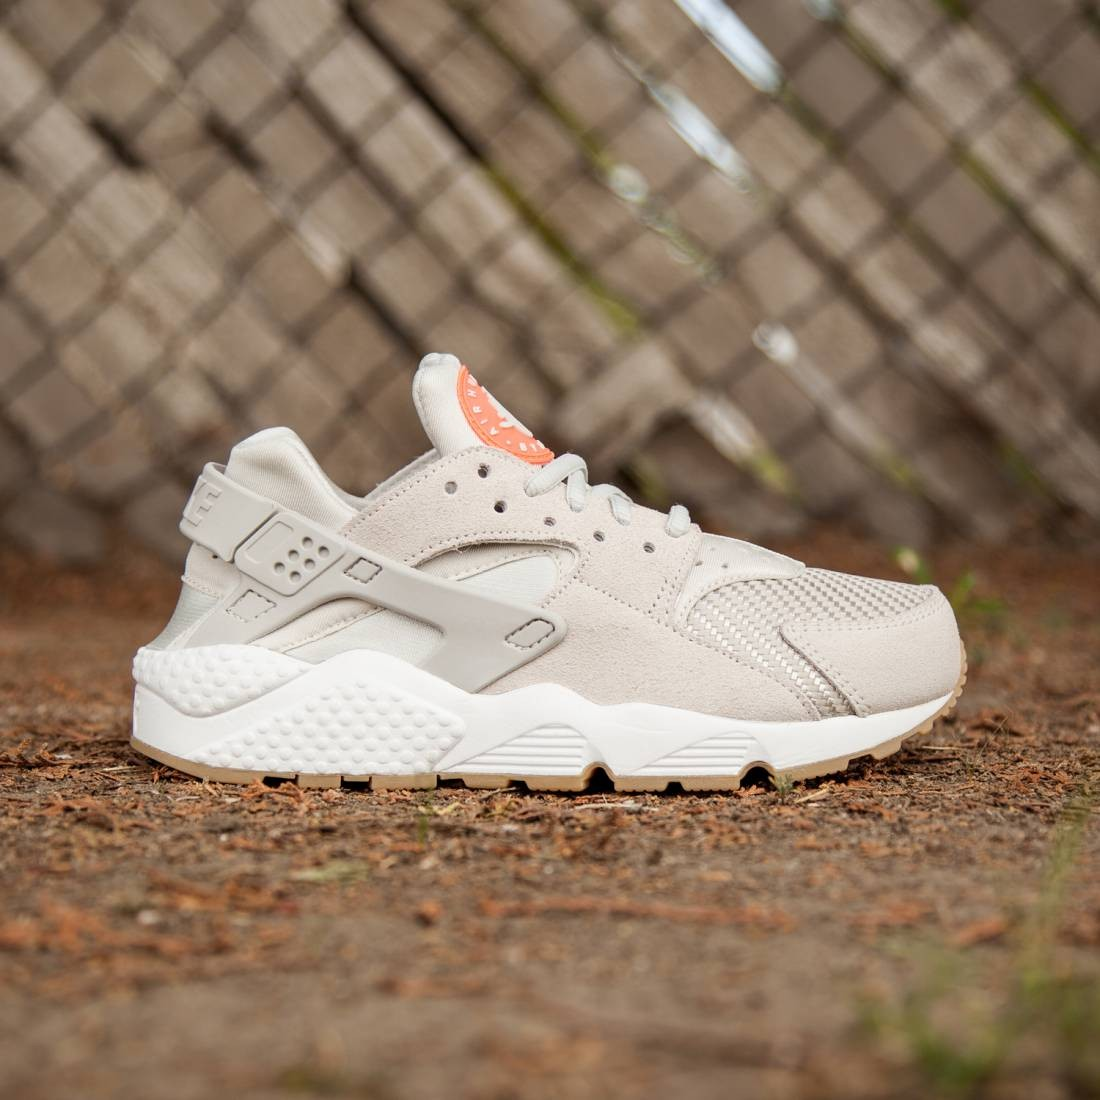 Run Huarache Nike Air Women light TXT white bone qwnpU6C